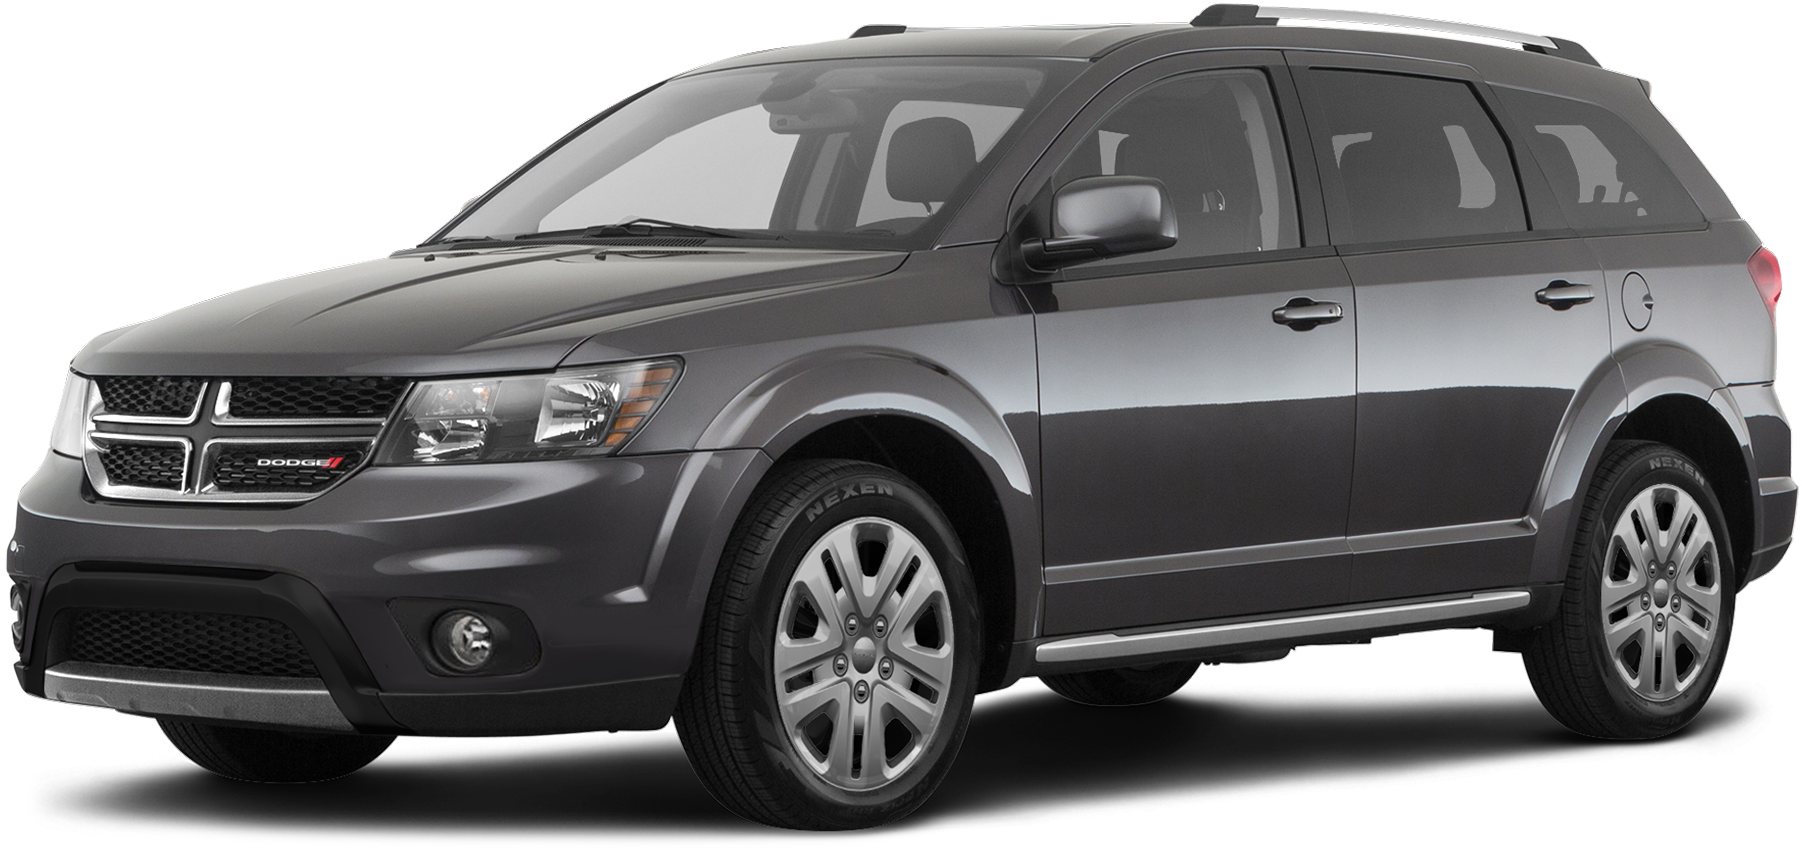 Review & Compare Dodge Journey at Larry H. Miller Chrysler Jeep Dodge Ram Surprise